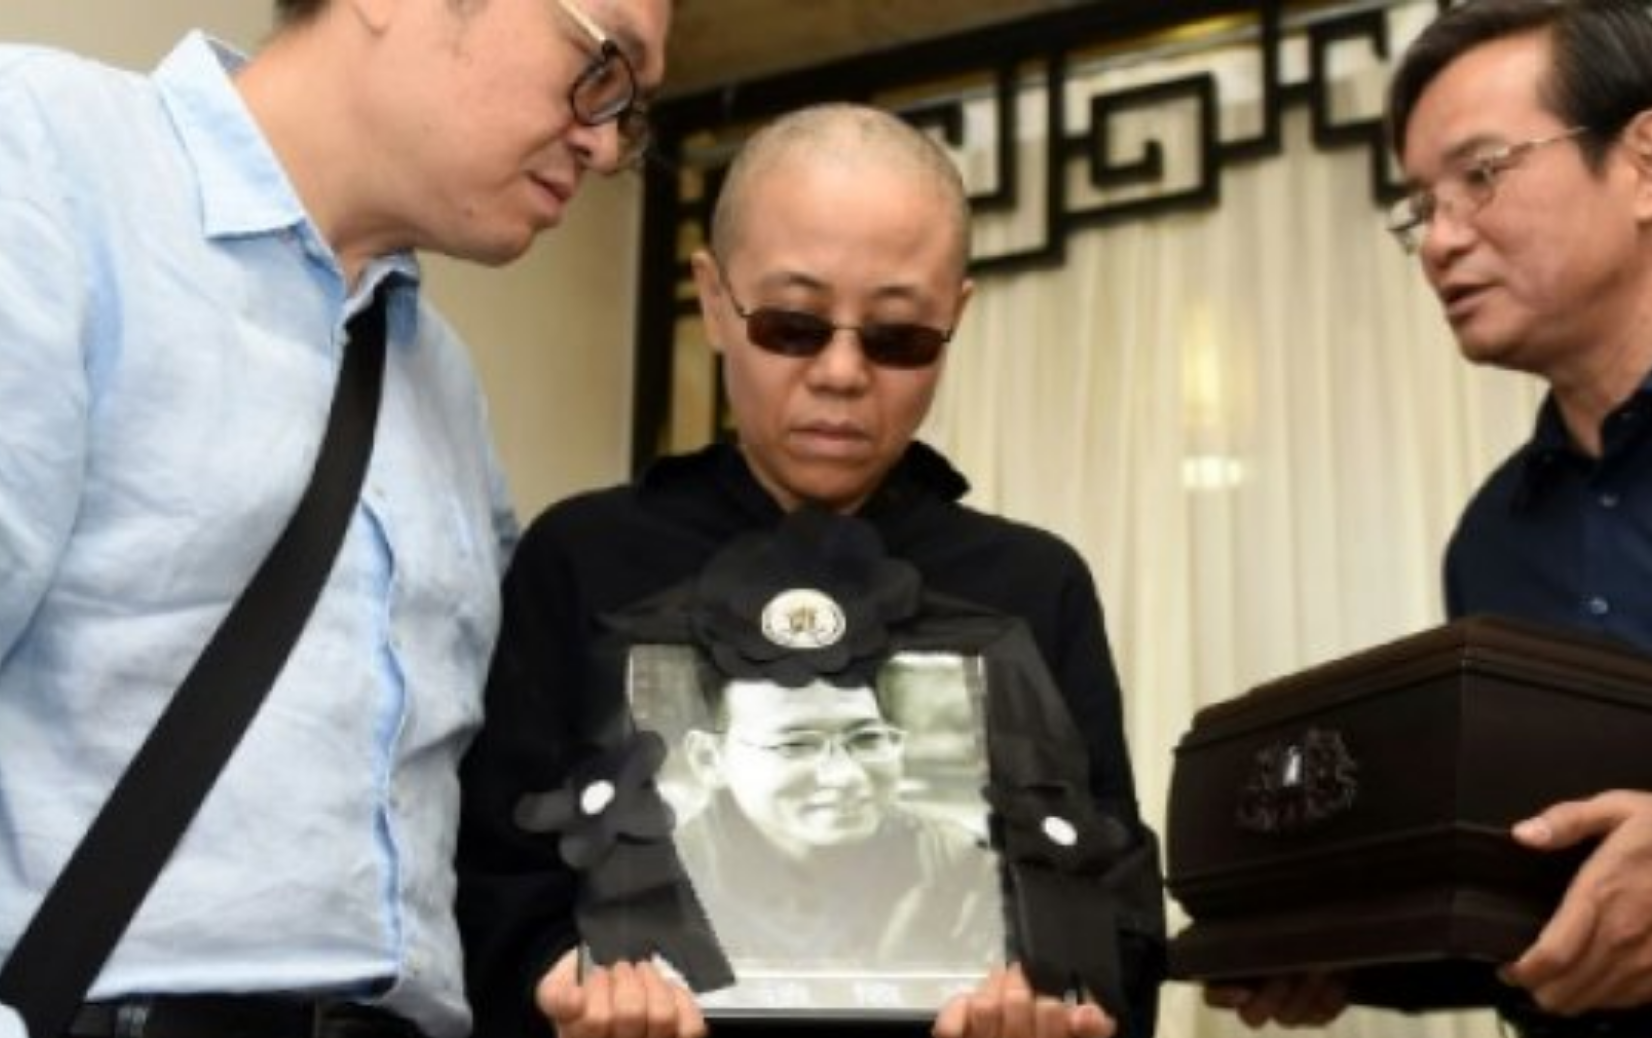 First public appearance for Chinese Nobel dissident Liu Xiaobo widow